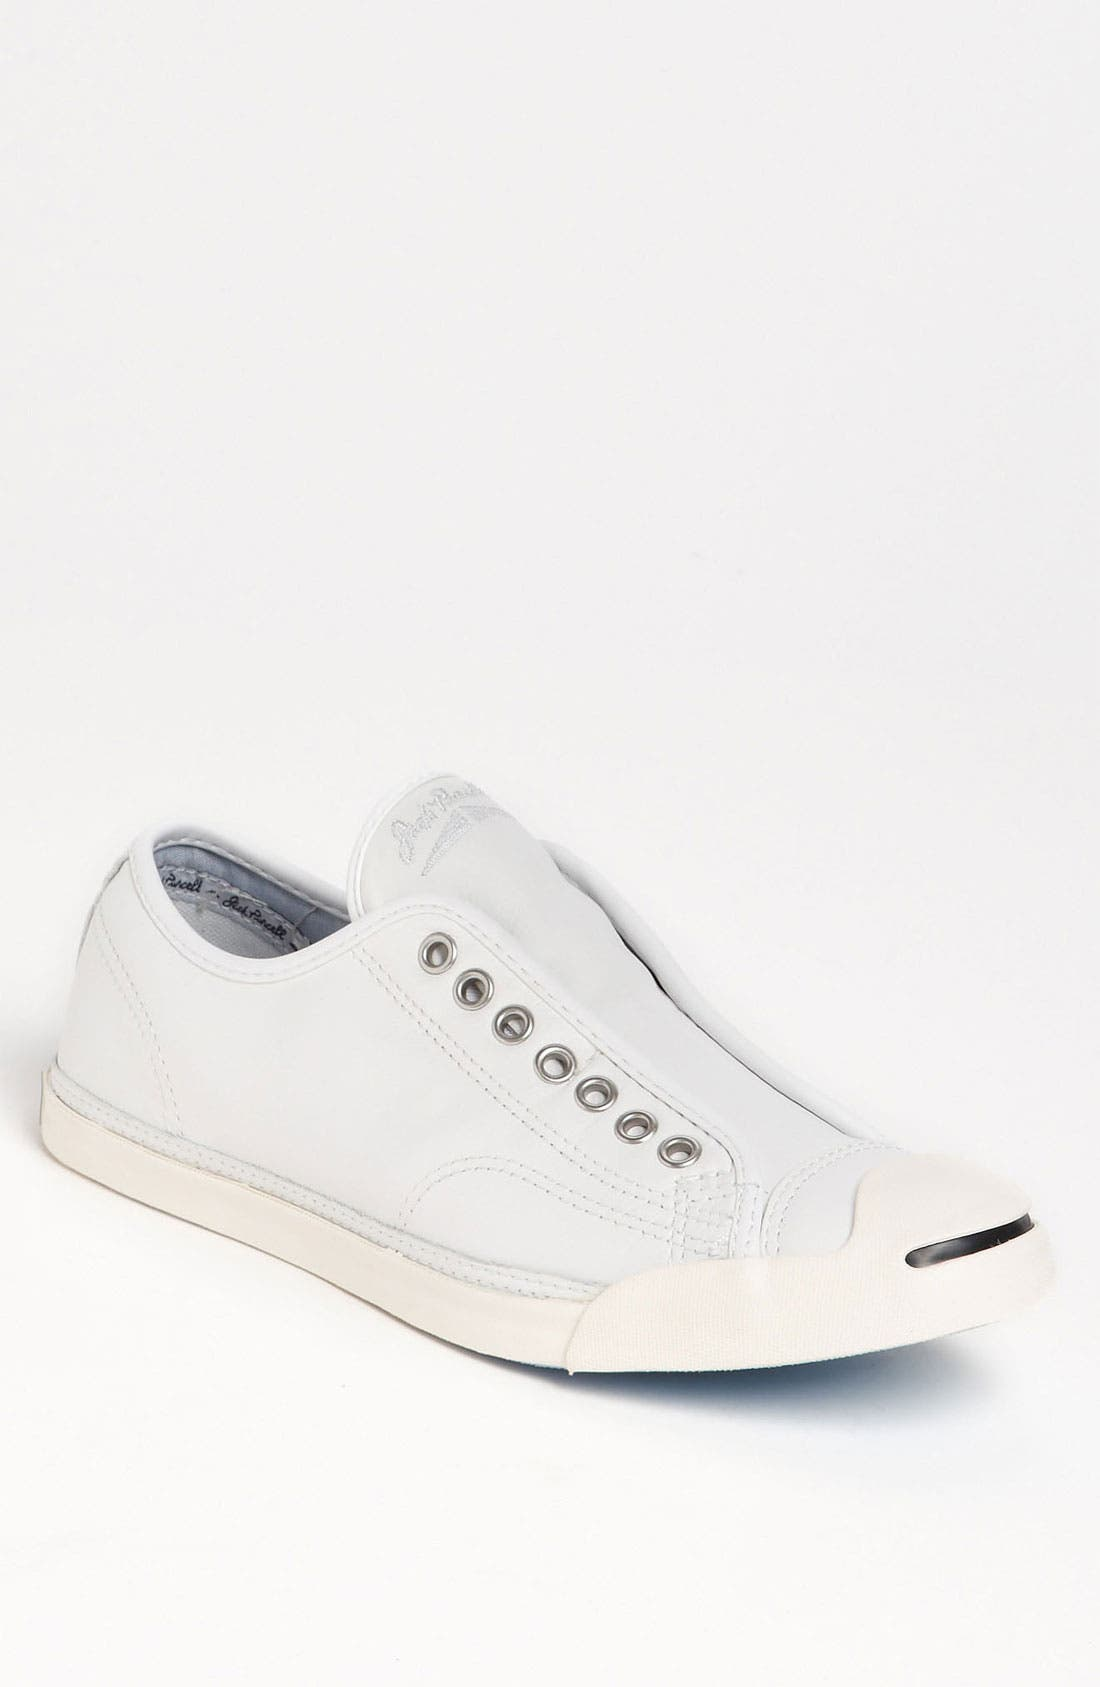 Main Image - Converse 'Jack Purcell LP' Slip-On Sneaker